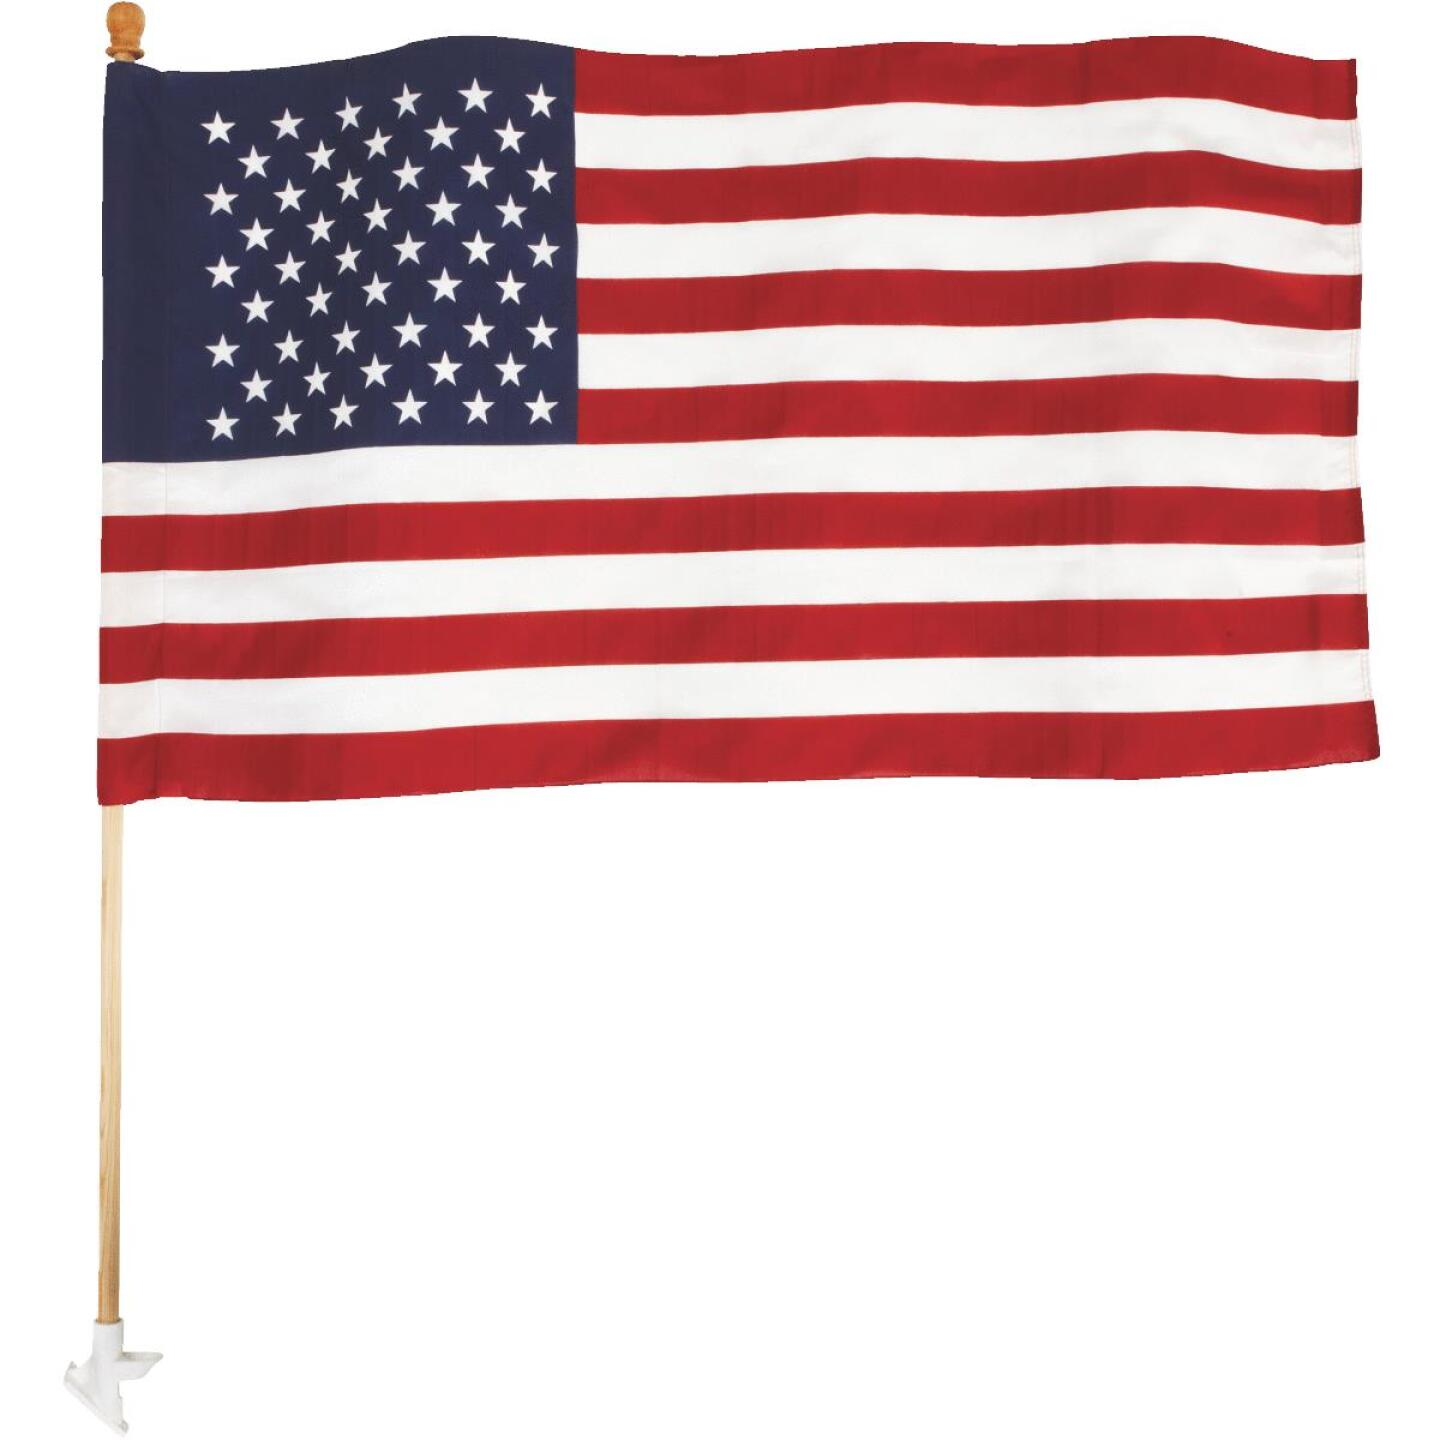 Valley Forge 2.5 Ft. x 4 Ft. Polycotton American Flag & 5 Ft. Pole Kit Image 3